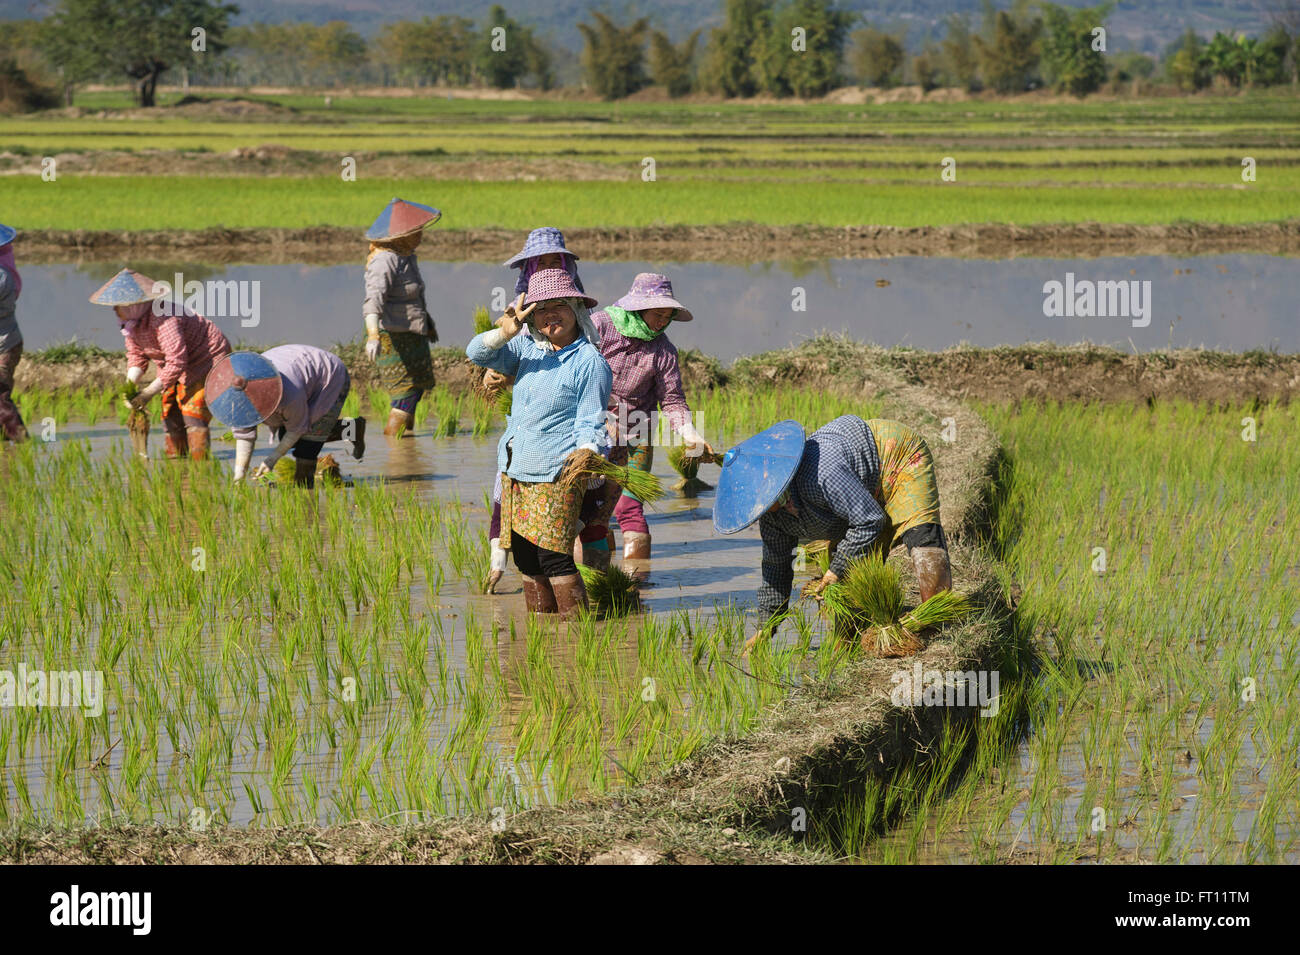 Women working in the rice paddy fields near Kyaing Tong, Kentung, Shan State, Myanmar, Burma Stock Photo